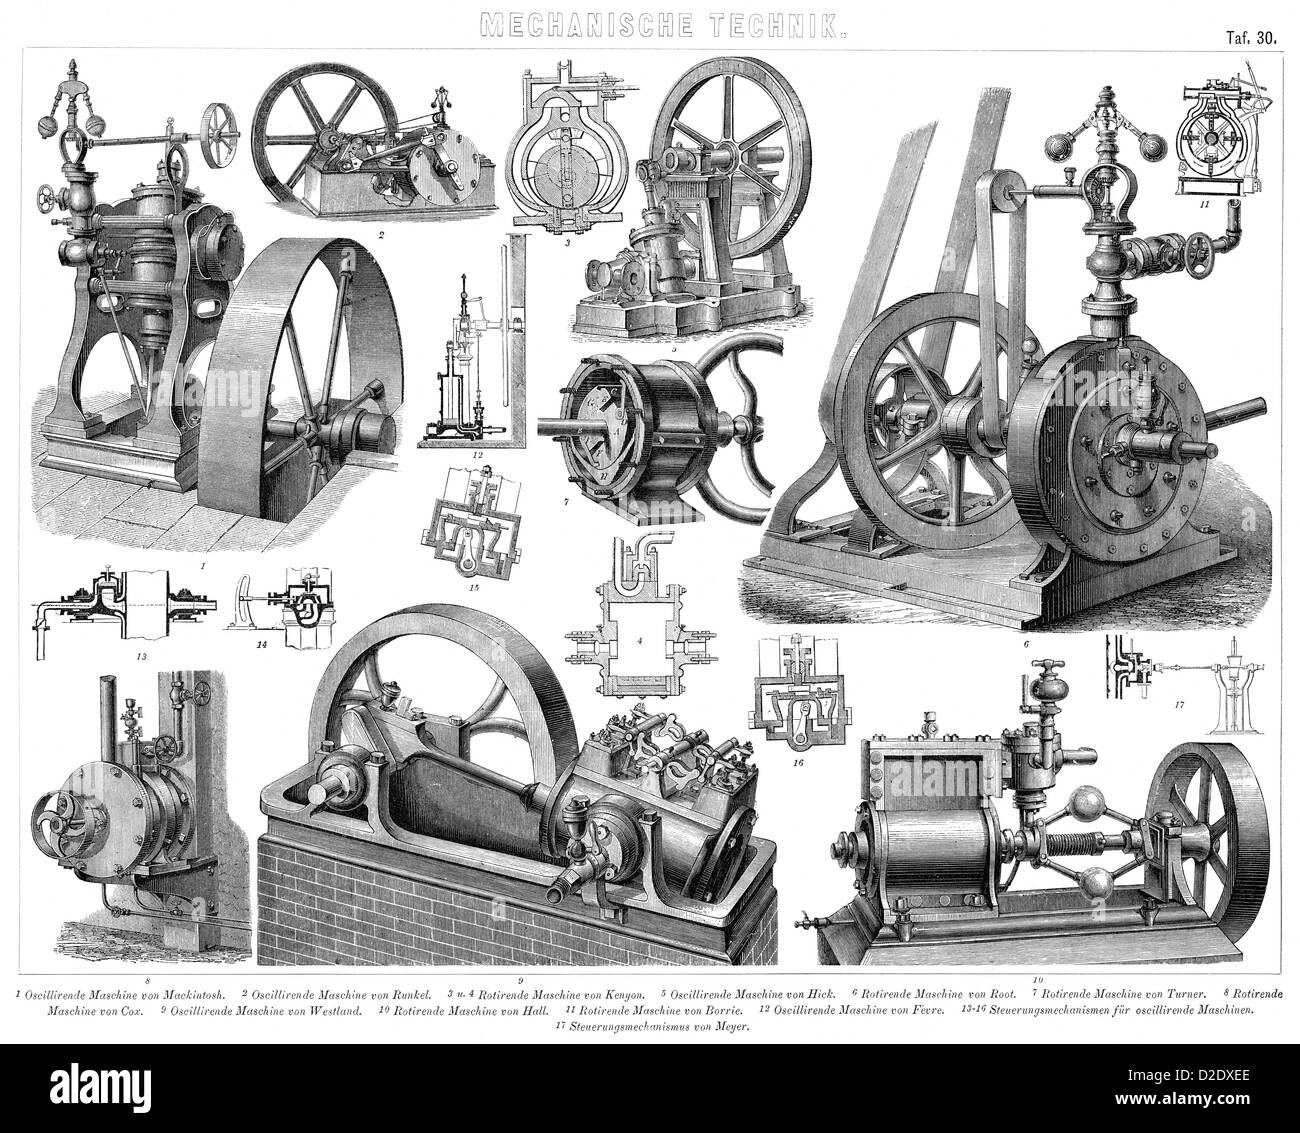 Steam Powered Black and White Stock Photos & Images - Alamy